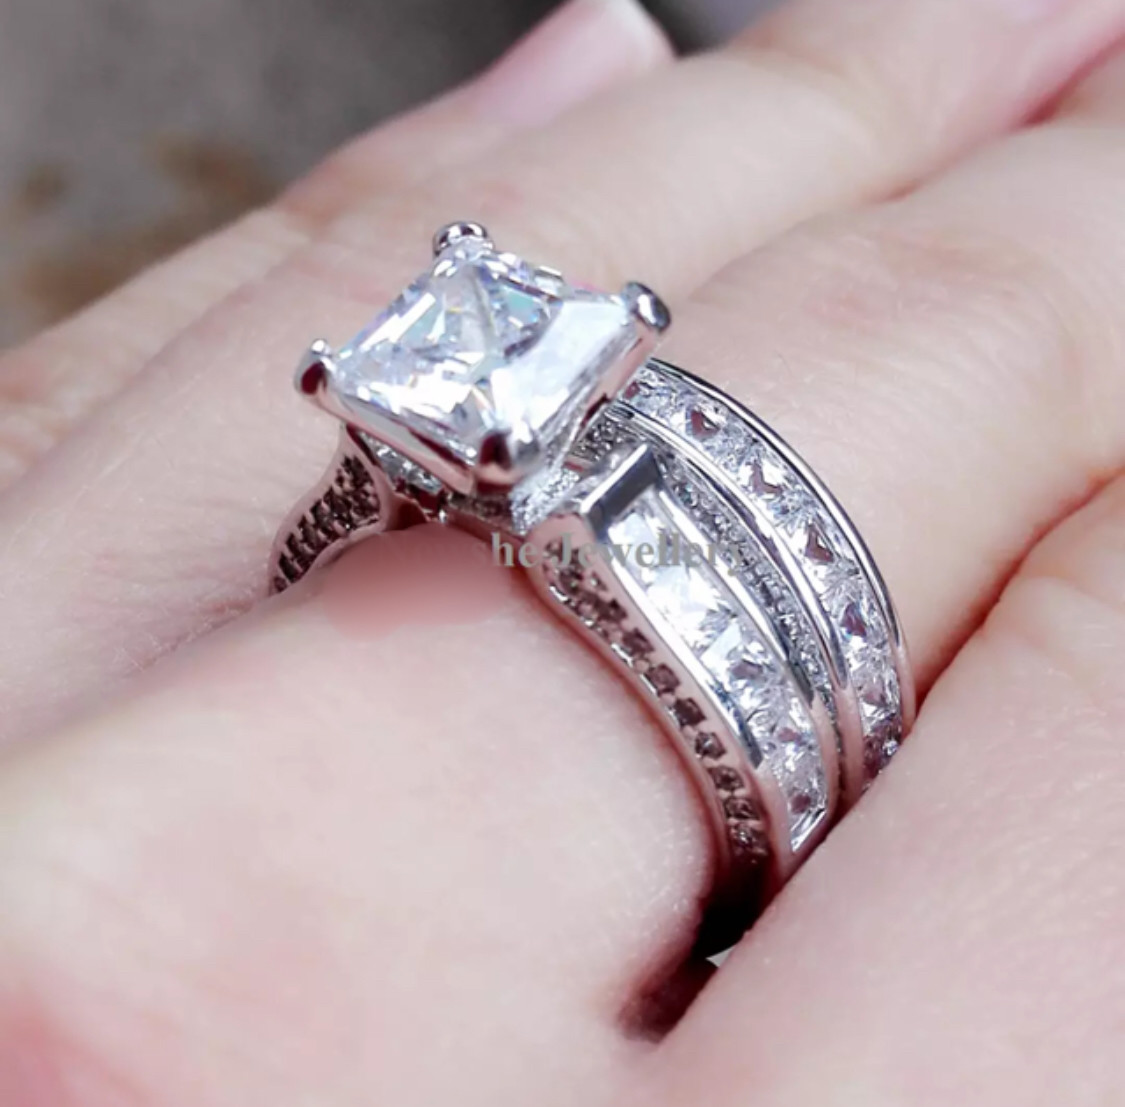 Solid 925 Sterling silver wedding set sizes 5-10